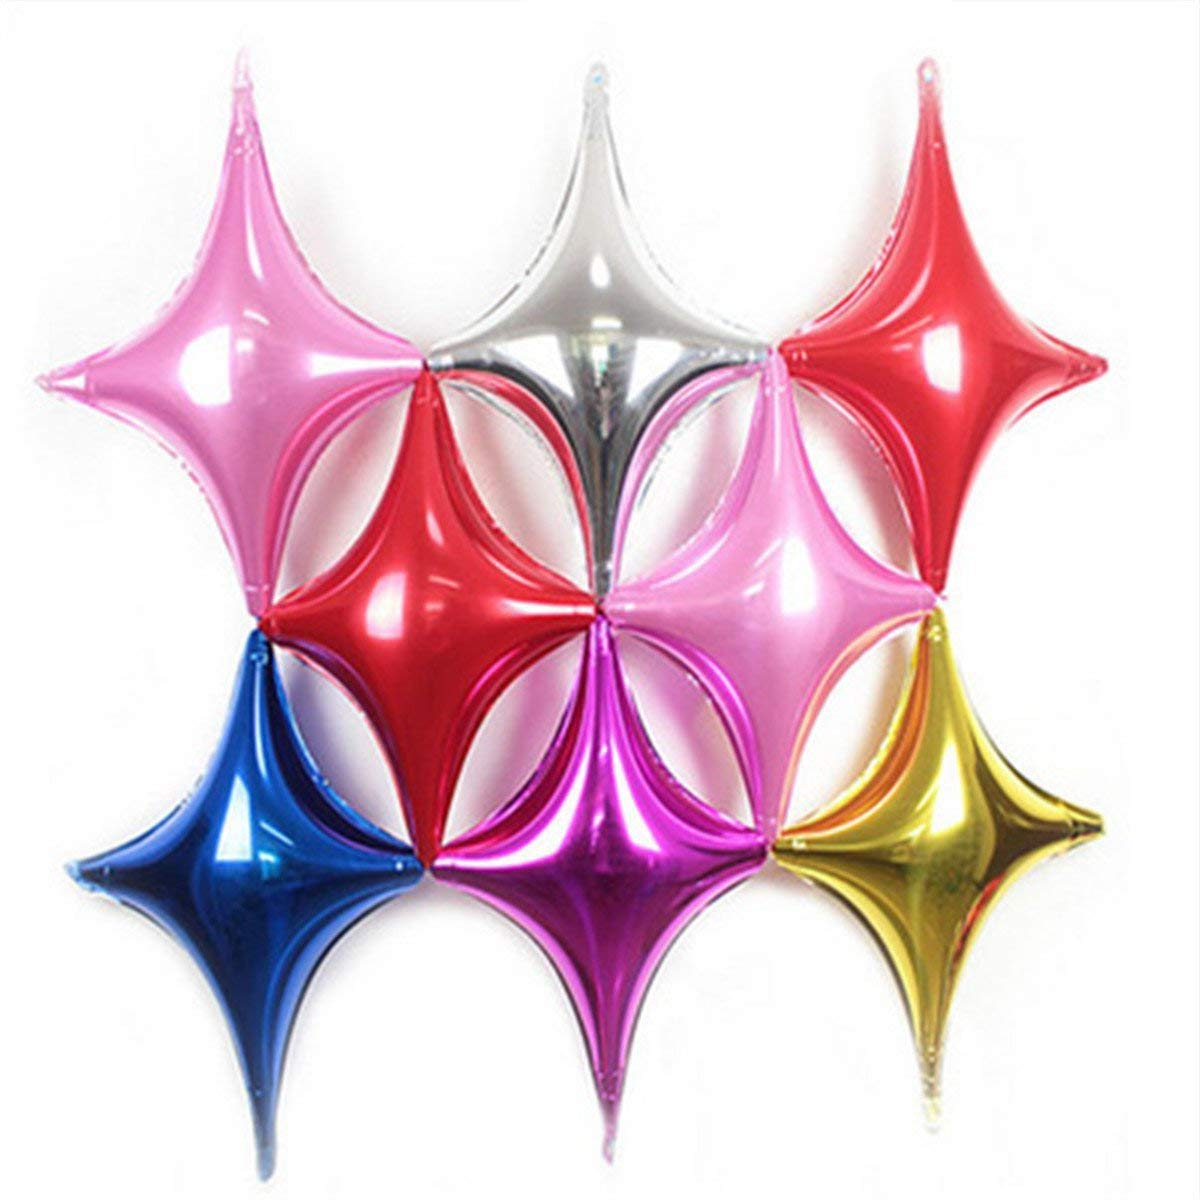 Cheap Shaped Helium Balloons, find Shaped Helium Balloons deals on ...